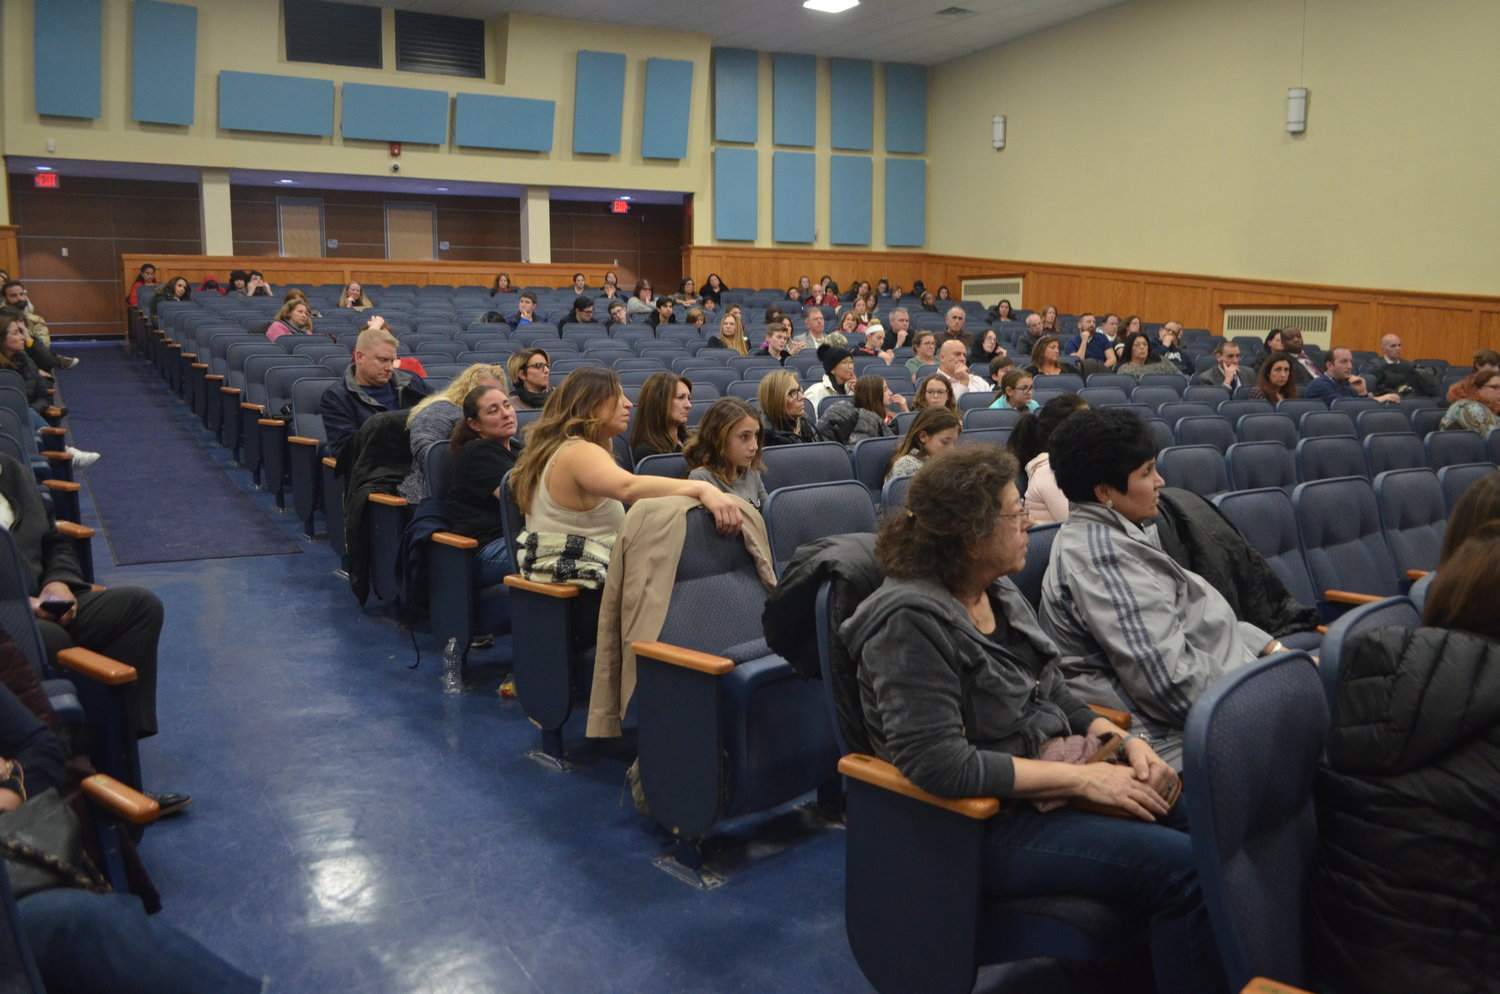 Local residents made their way to the middle school to hear Dewey discuss the facts about vaping.